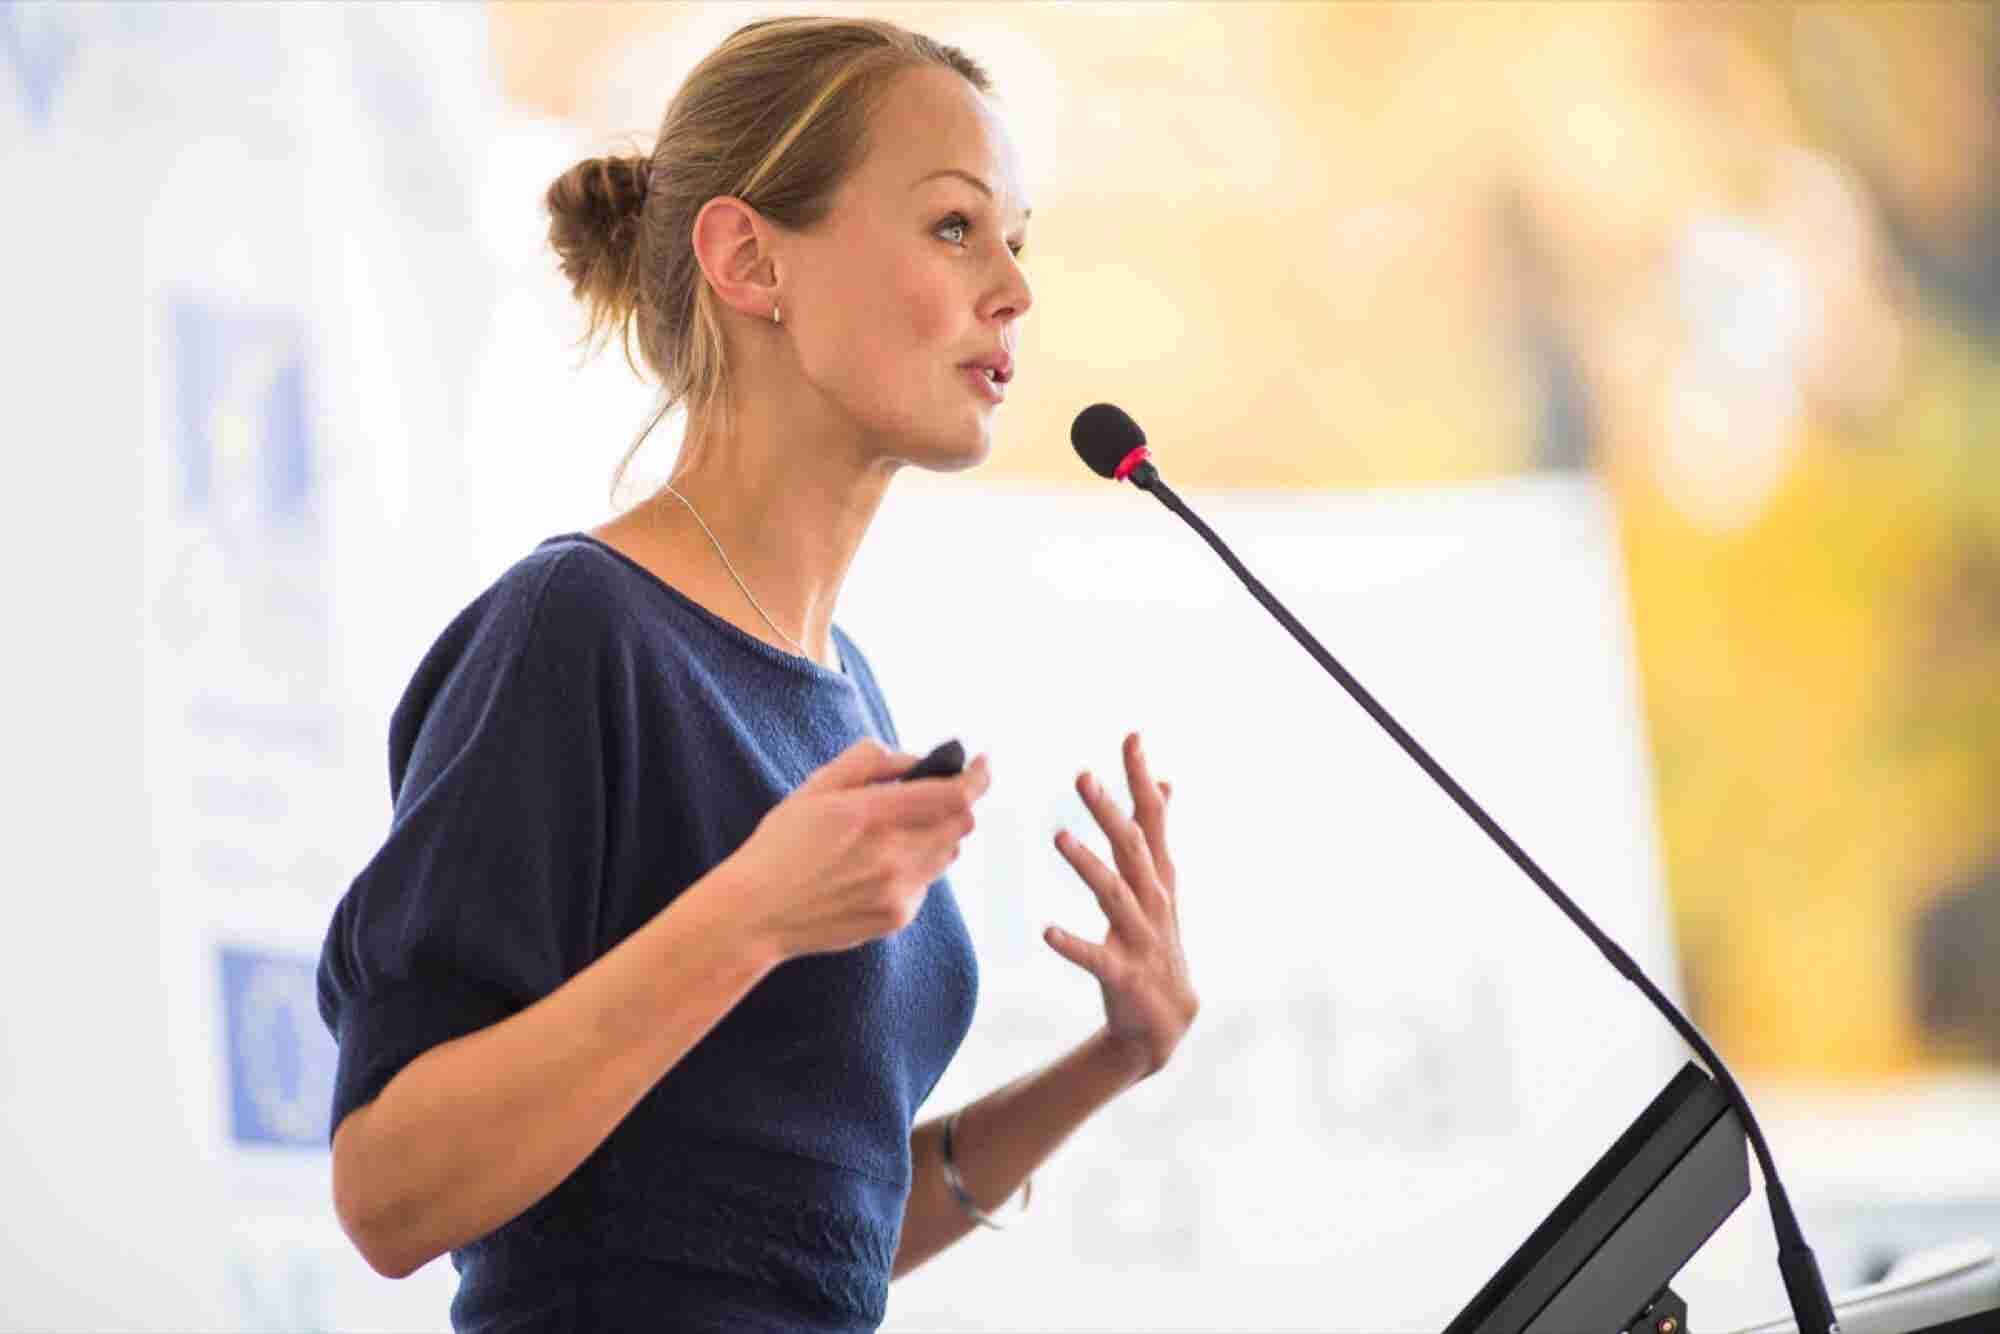 How to Propel Your Speaking Career